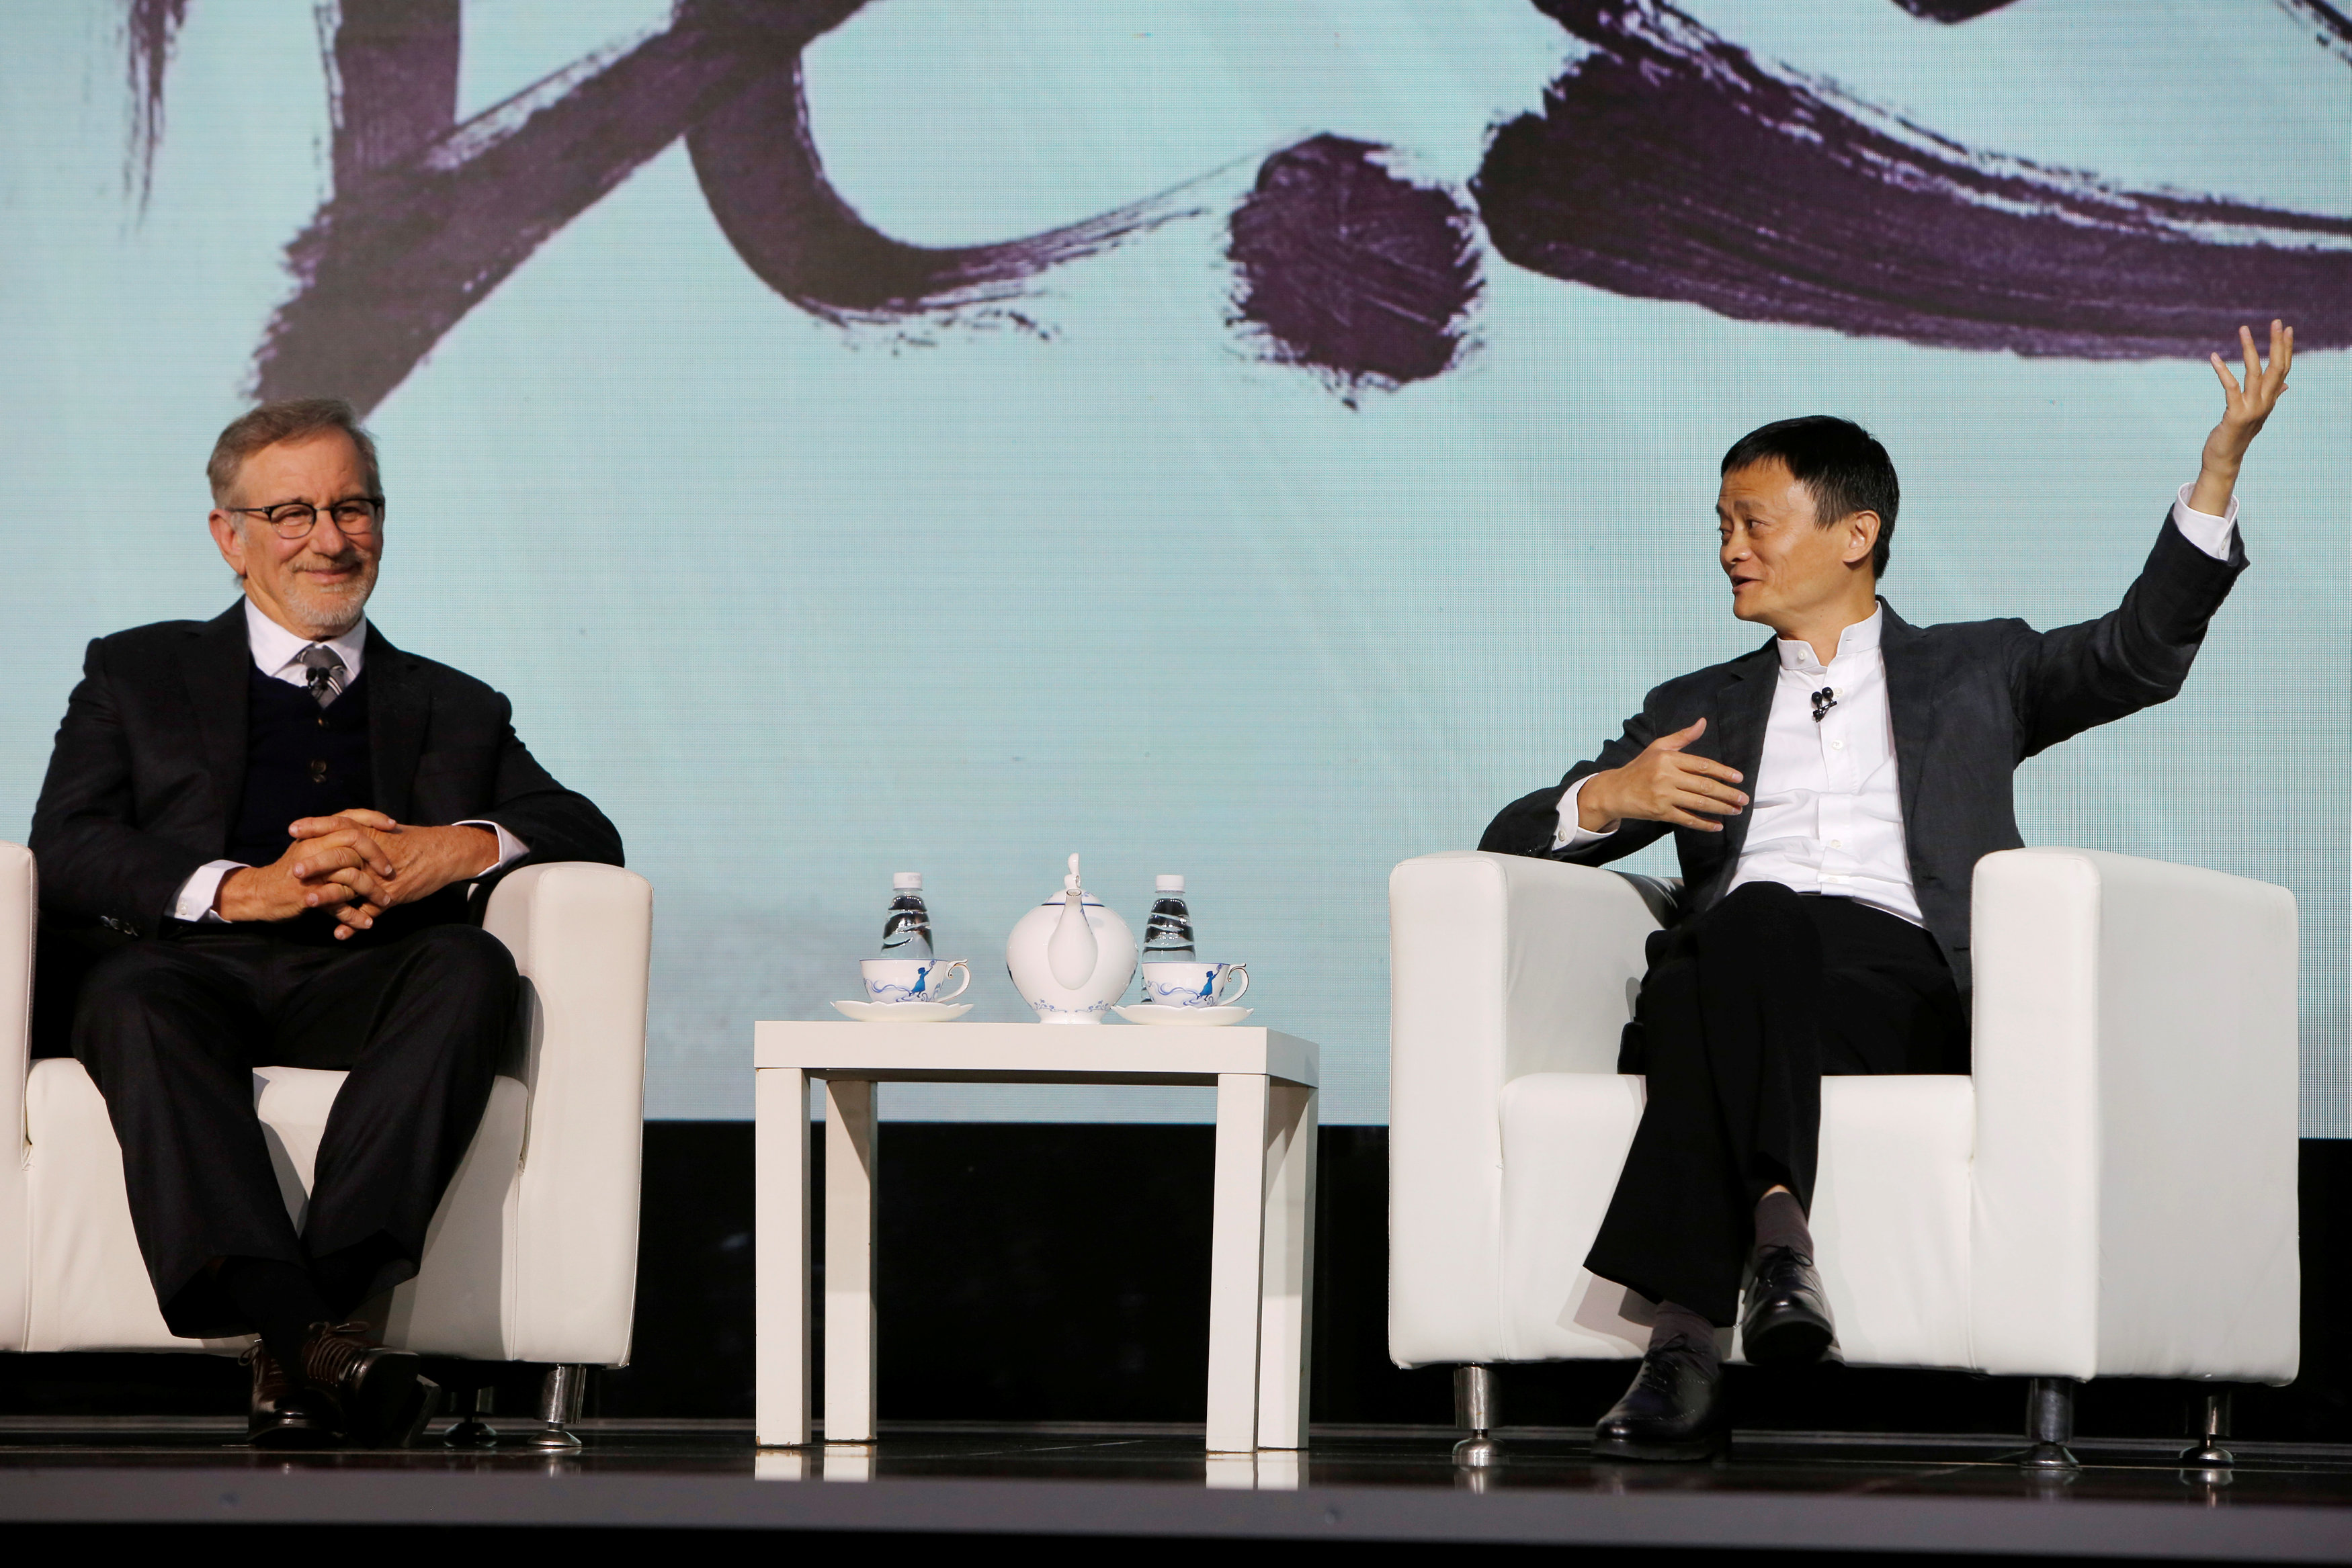 Steven Spielberg (L), film director and Chairman of Amblin Partners and Jack Ma, Chairman and chief executive of Alibaba Group attend an event to announce partnership between Alibaba Pictures Group Limited and Amblin Partners, in Beijing